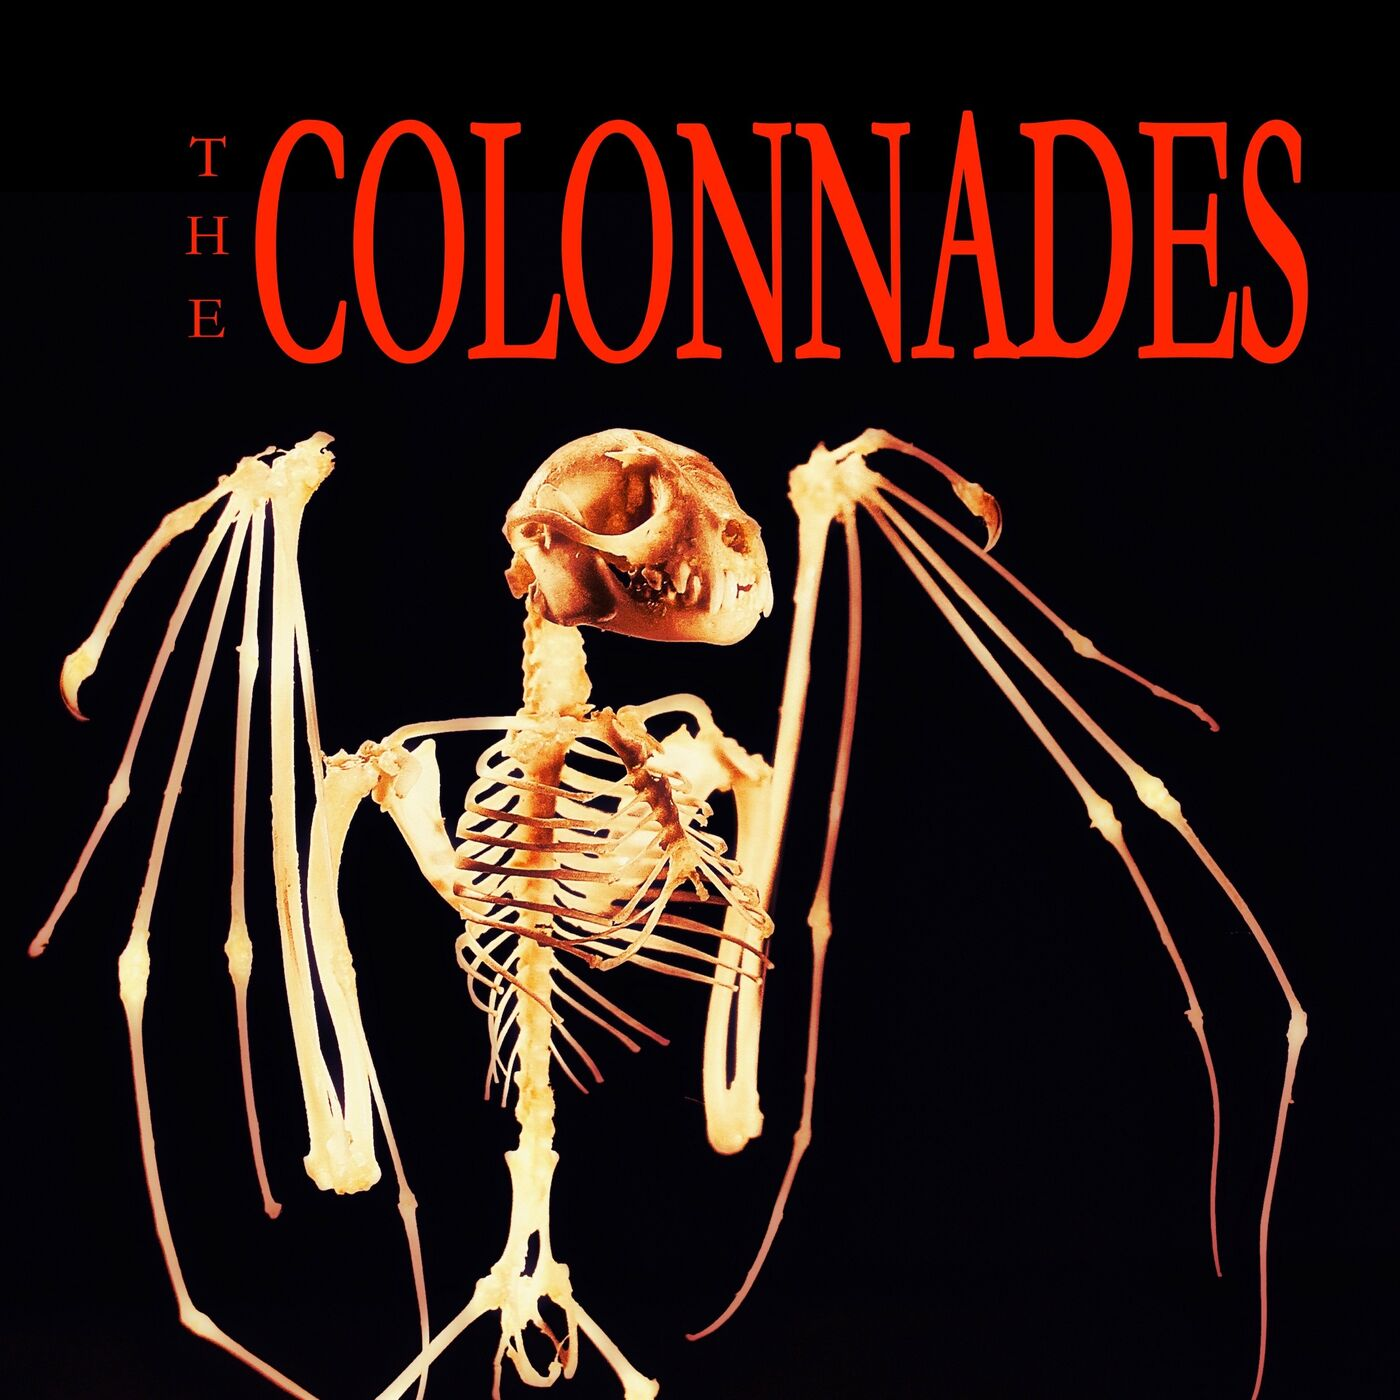 Chapter 9 The Colonnades